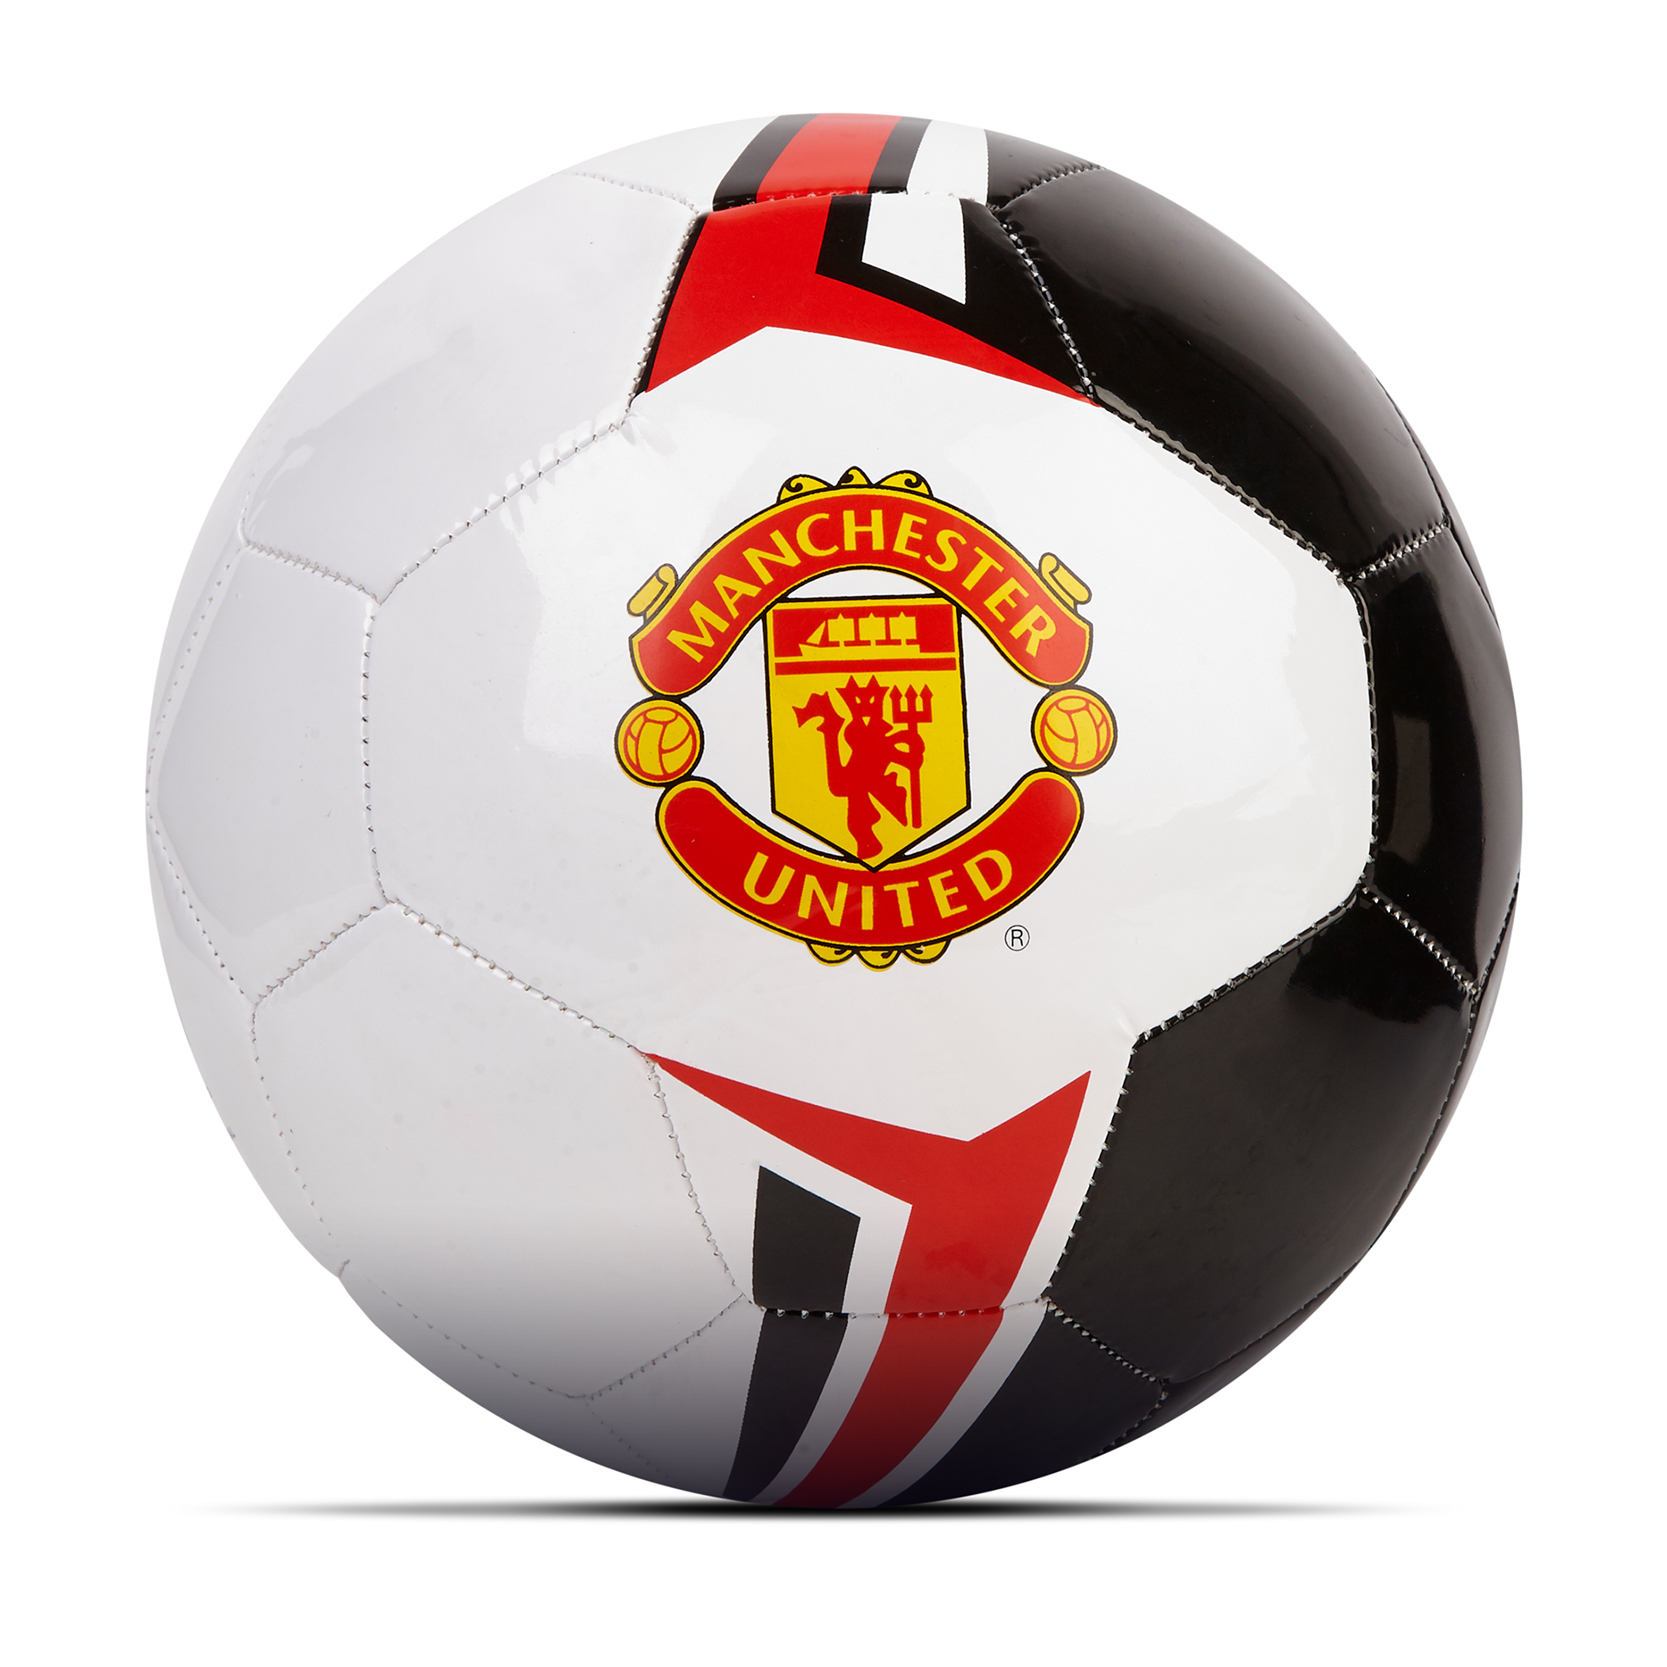 Ballon de football Manchester United - Blanc-Noir-Rouge - Taille 4